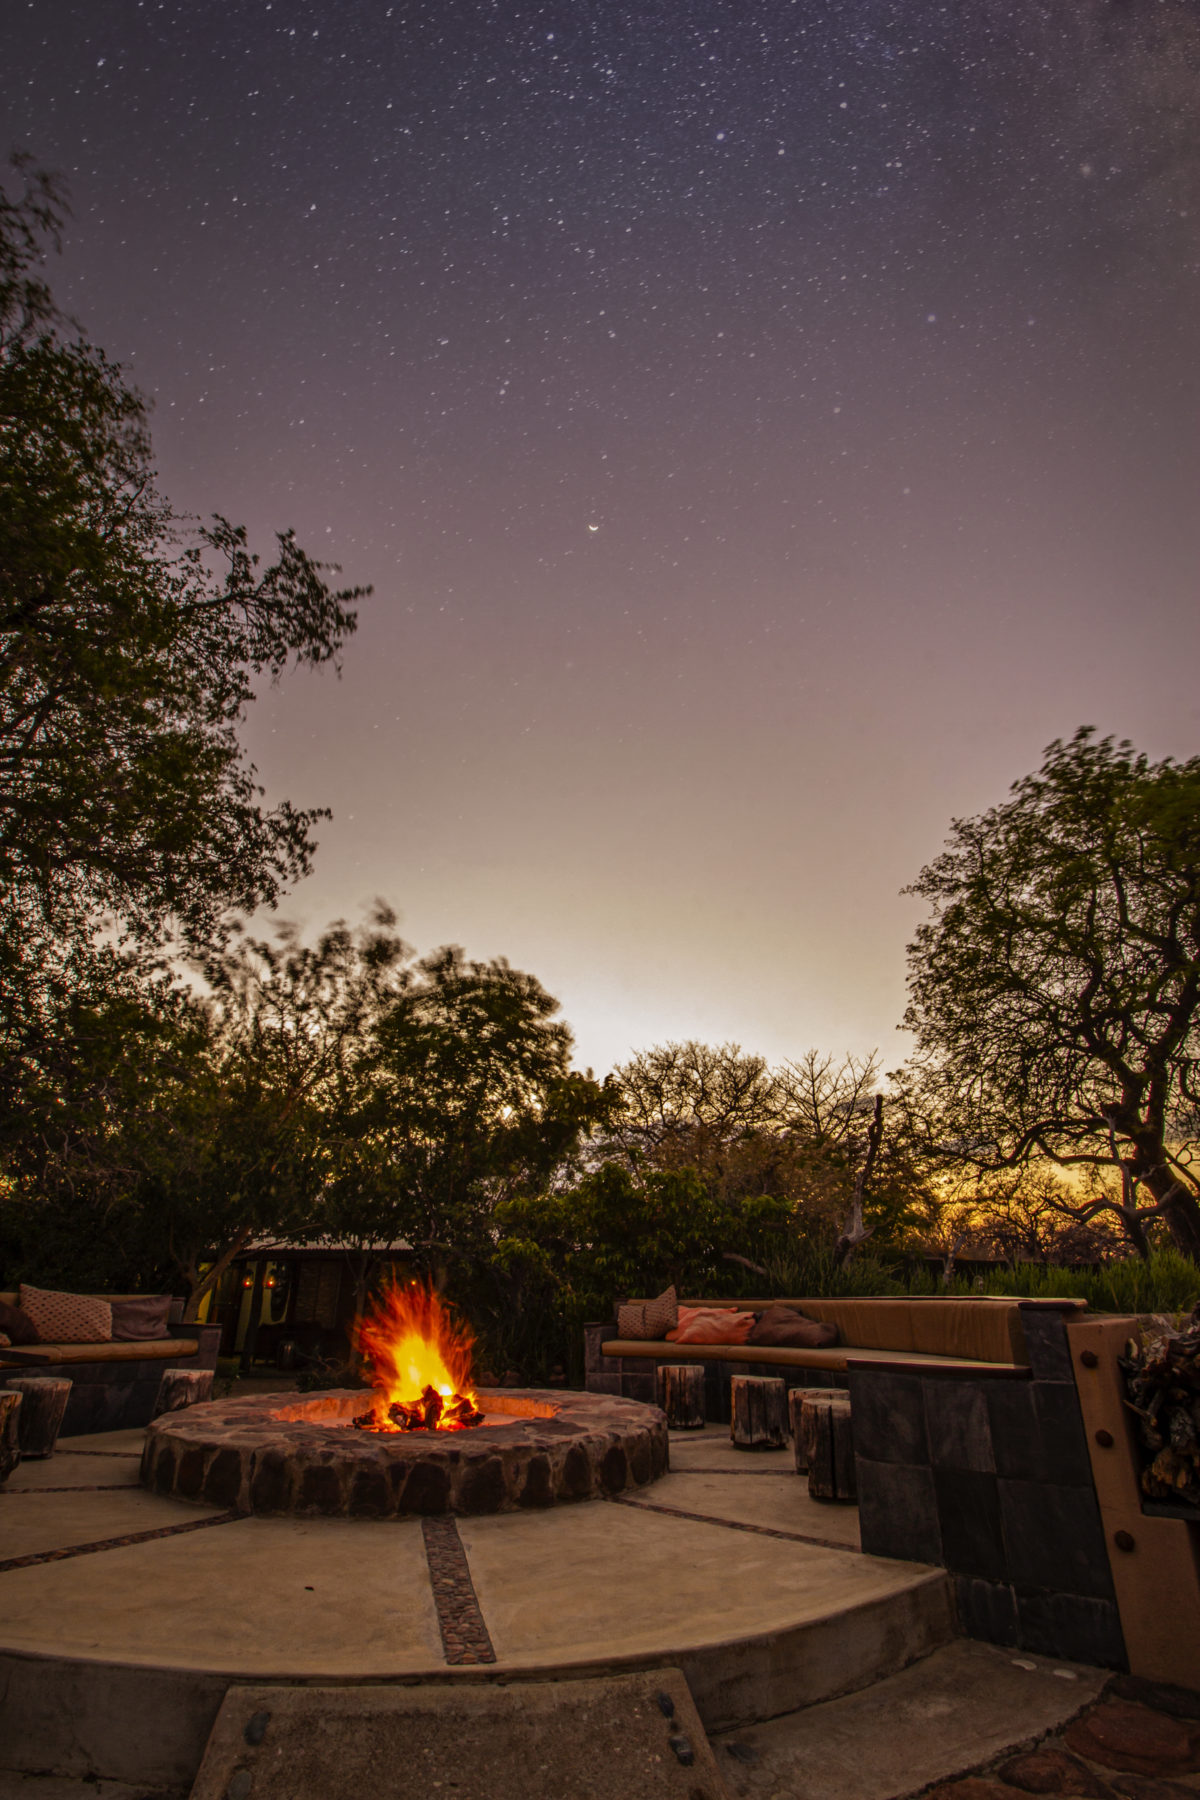 The fire roaring under the stars.